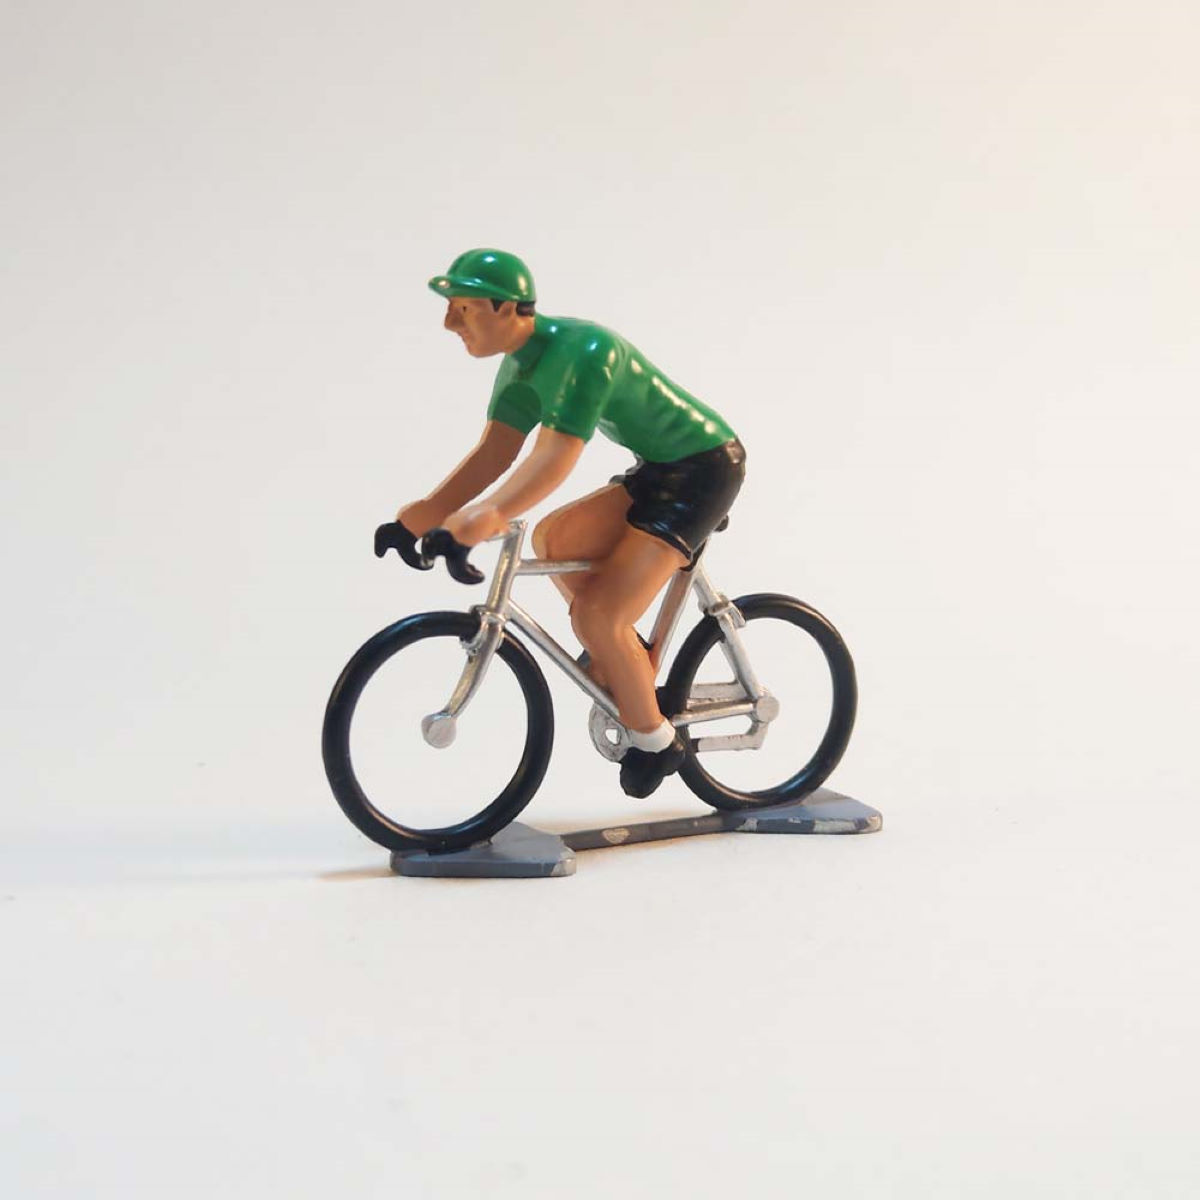 Image of Figurine Cycling Souvenirs Mini-cycliste maillot vert - Taille unique